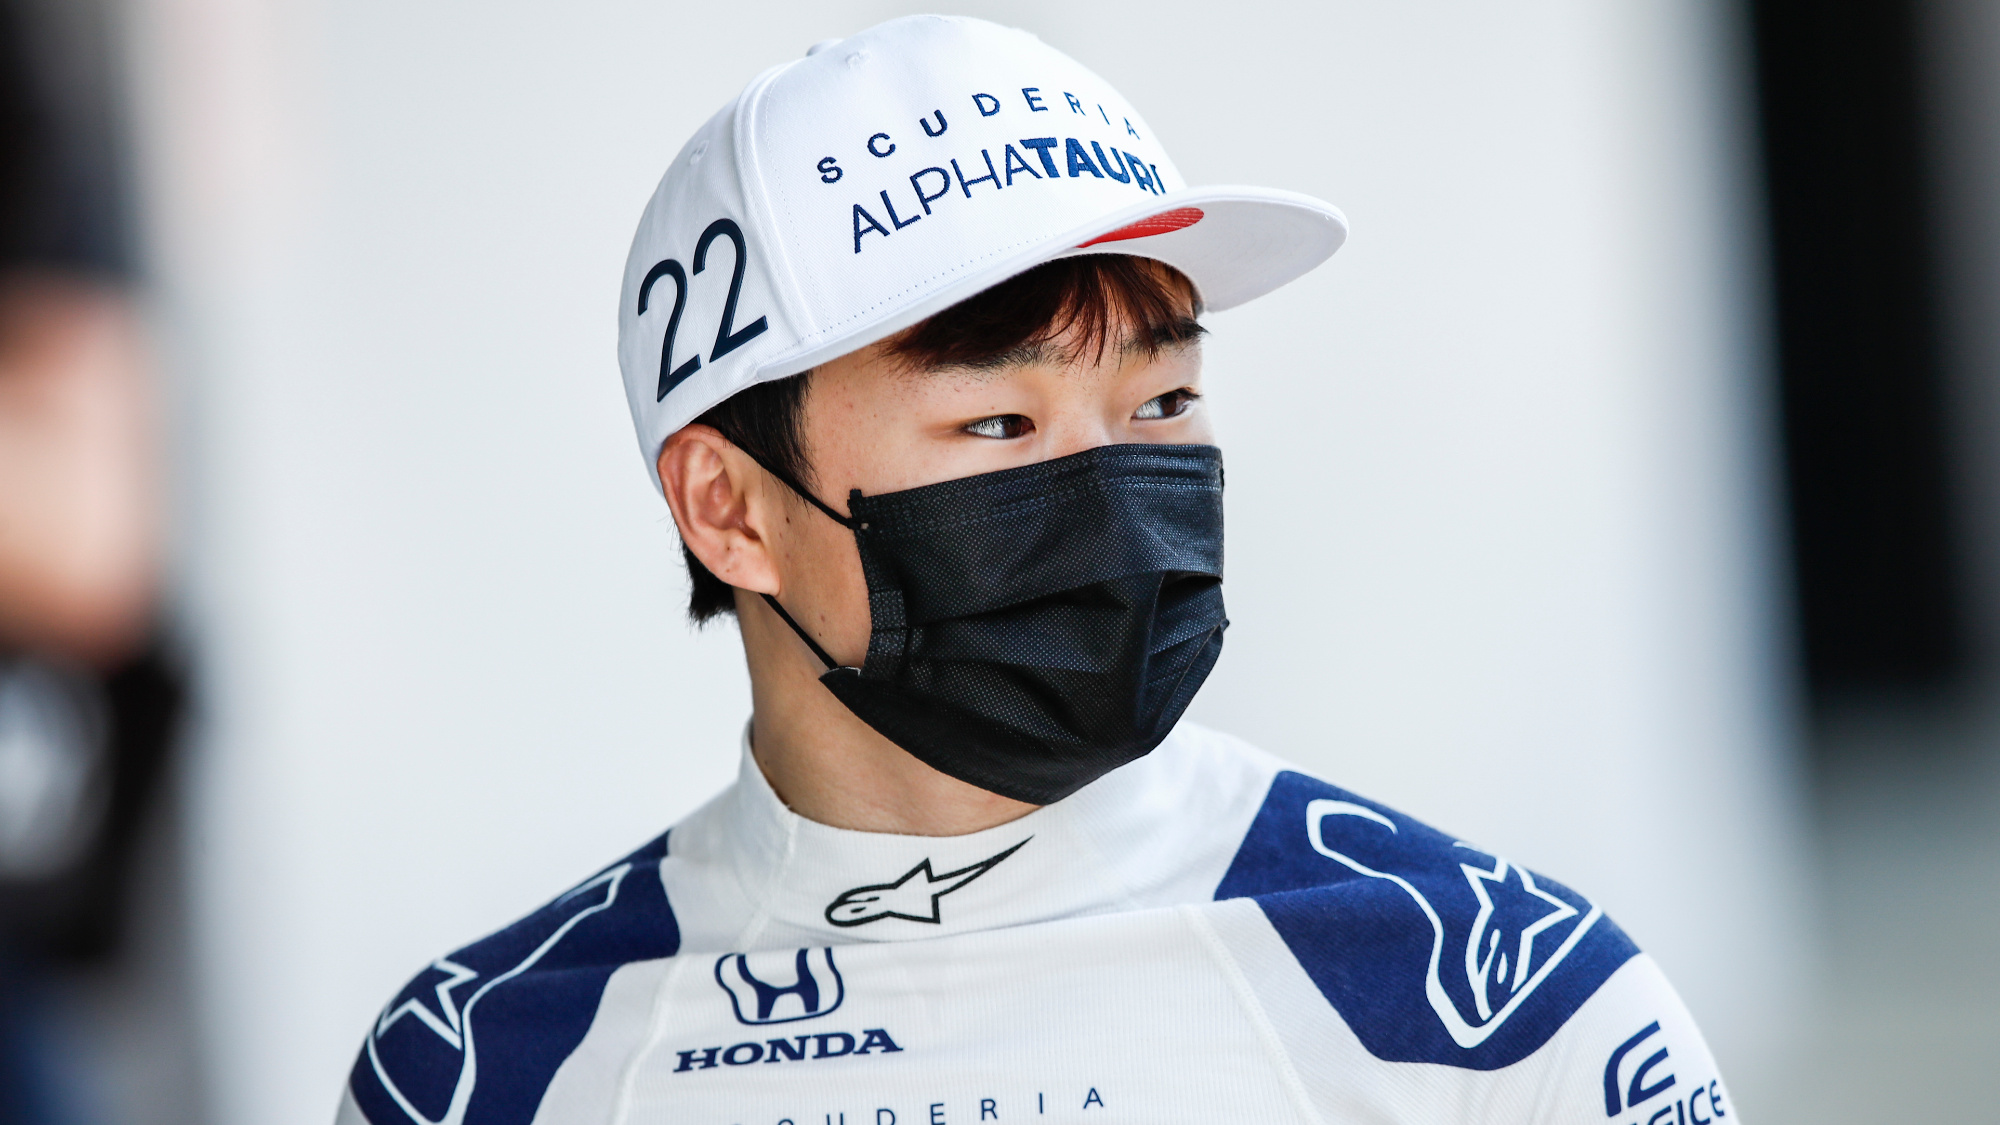 Has Yuki Tsunoda's momentum finally stalled in F1?